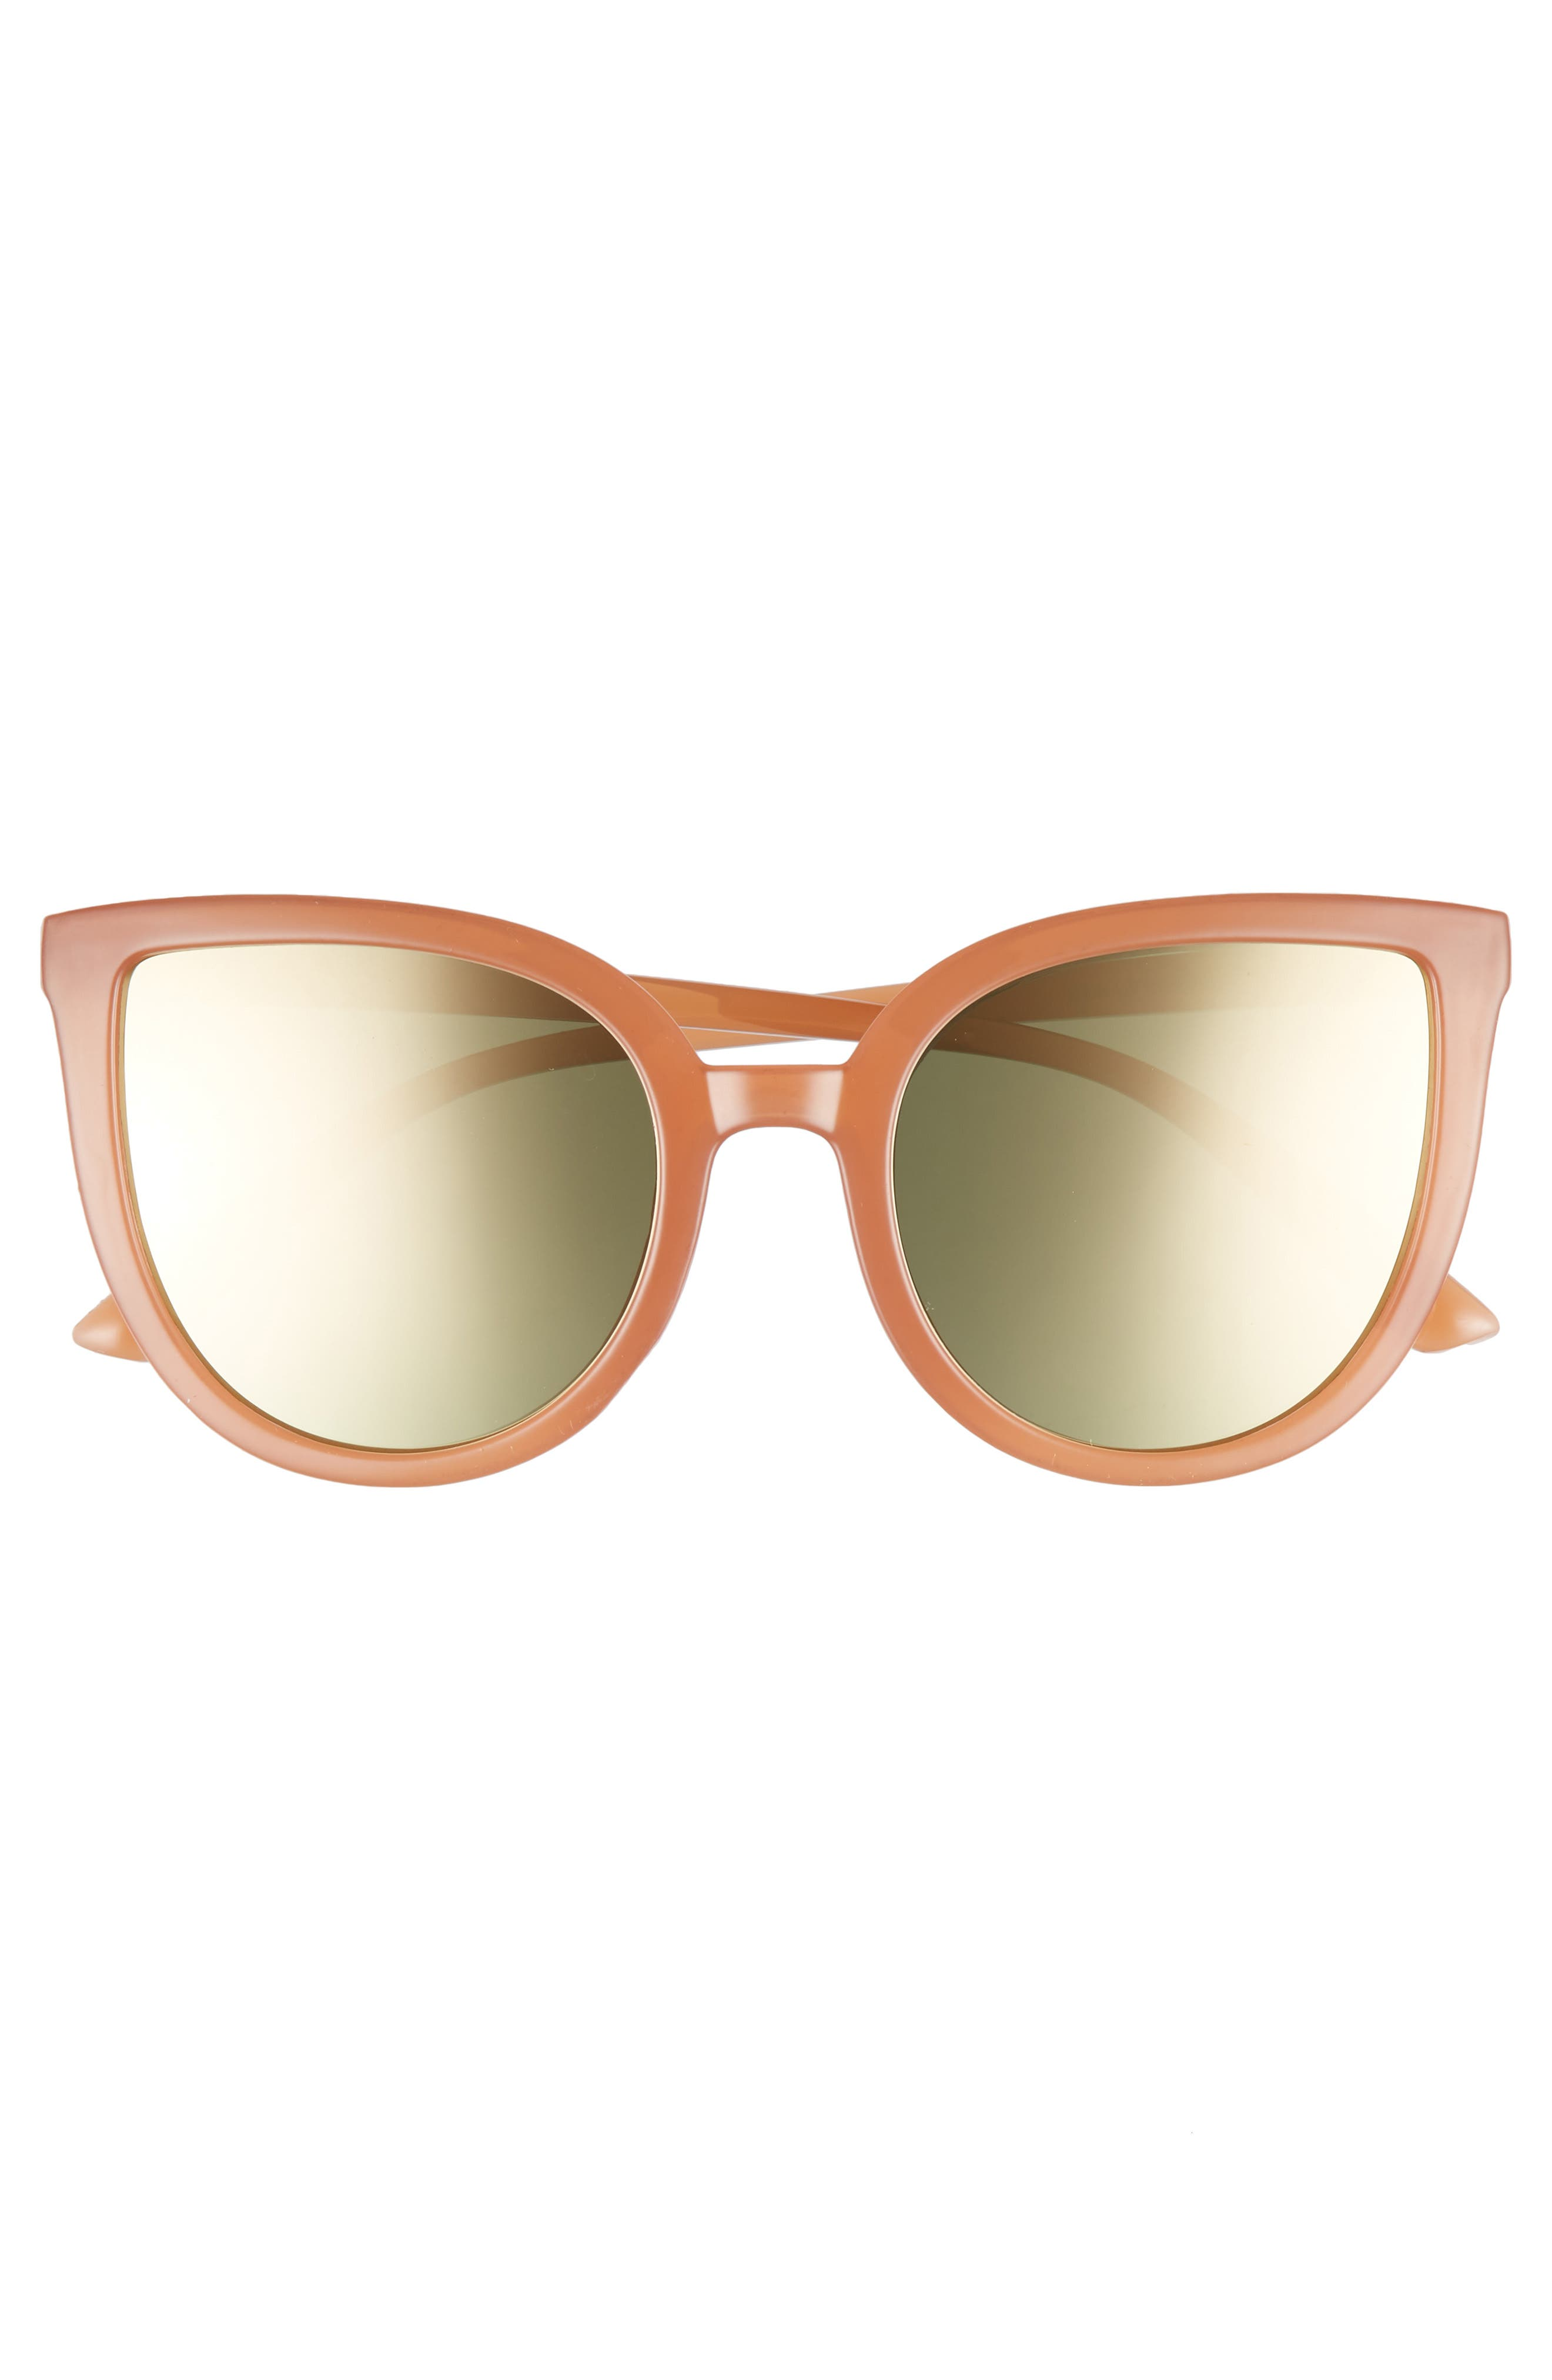 Thin Cat Eye Sunglasses,                             Alternate thumbnail 3, color,                             MILKY PEACH/ GOLD